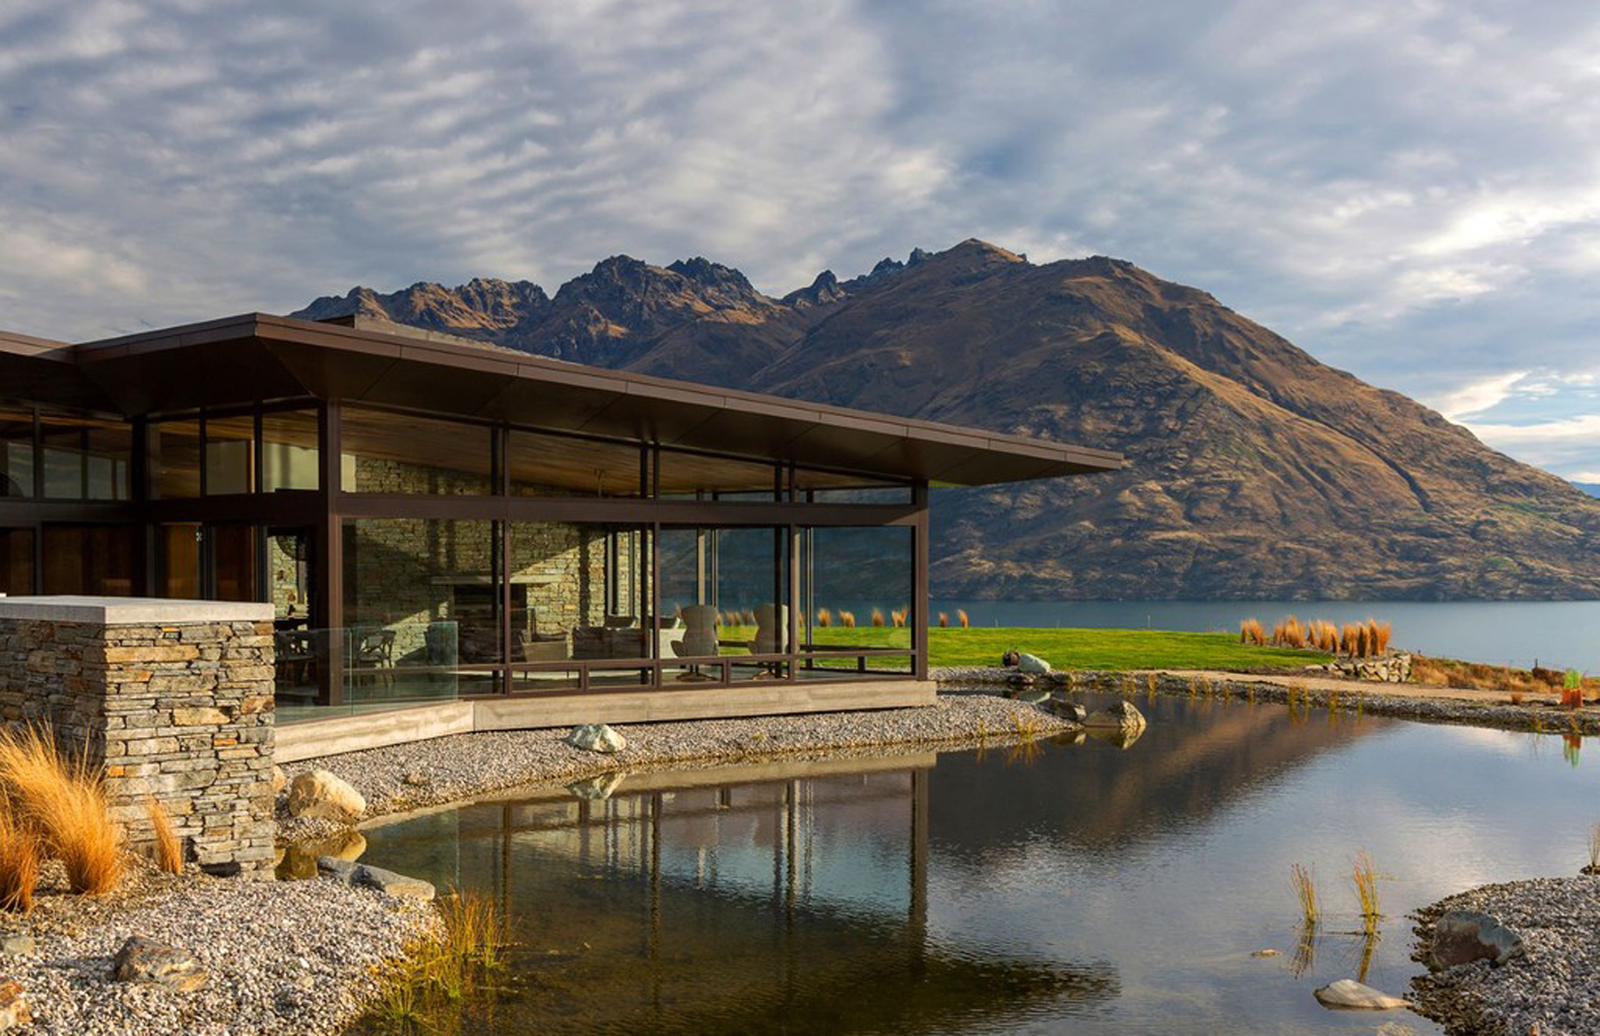 Hidden Island is designed to disappear into the landscape in New Zealand's Queenstown